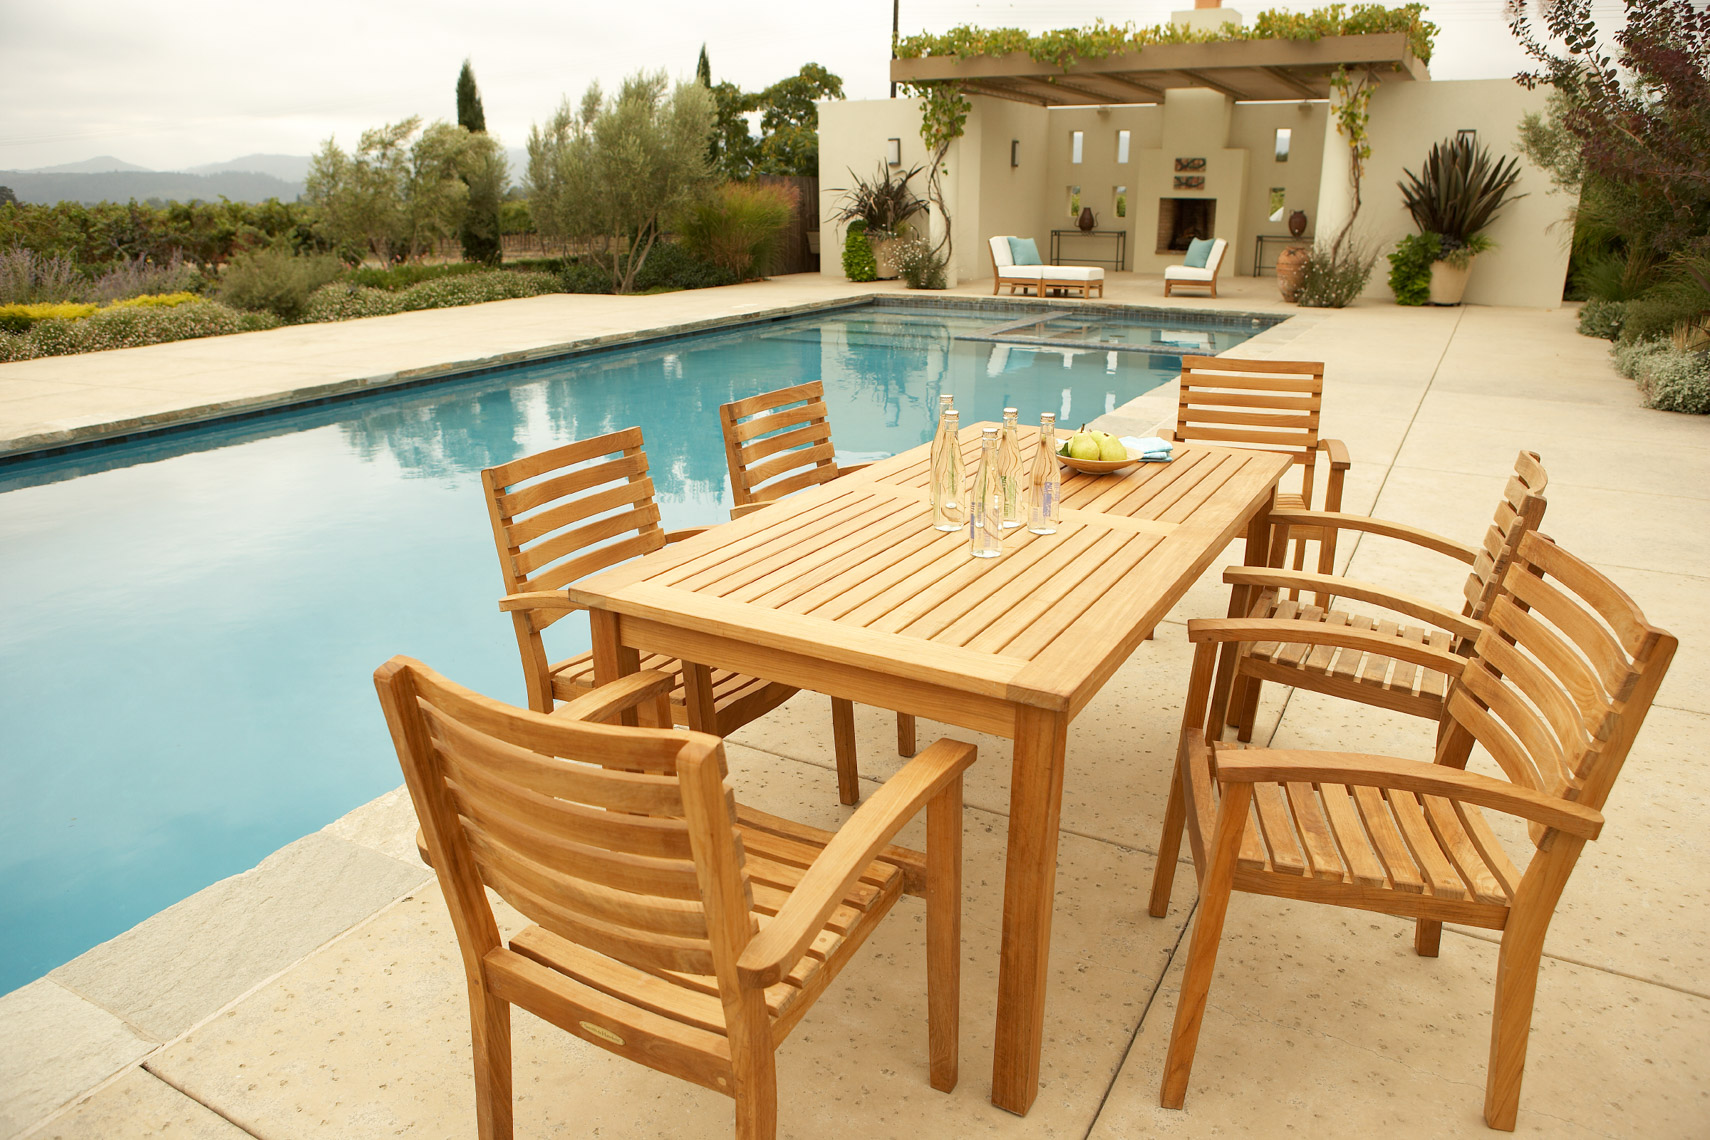 Teak dining collection on tile patio by pool San Francisco product photographer